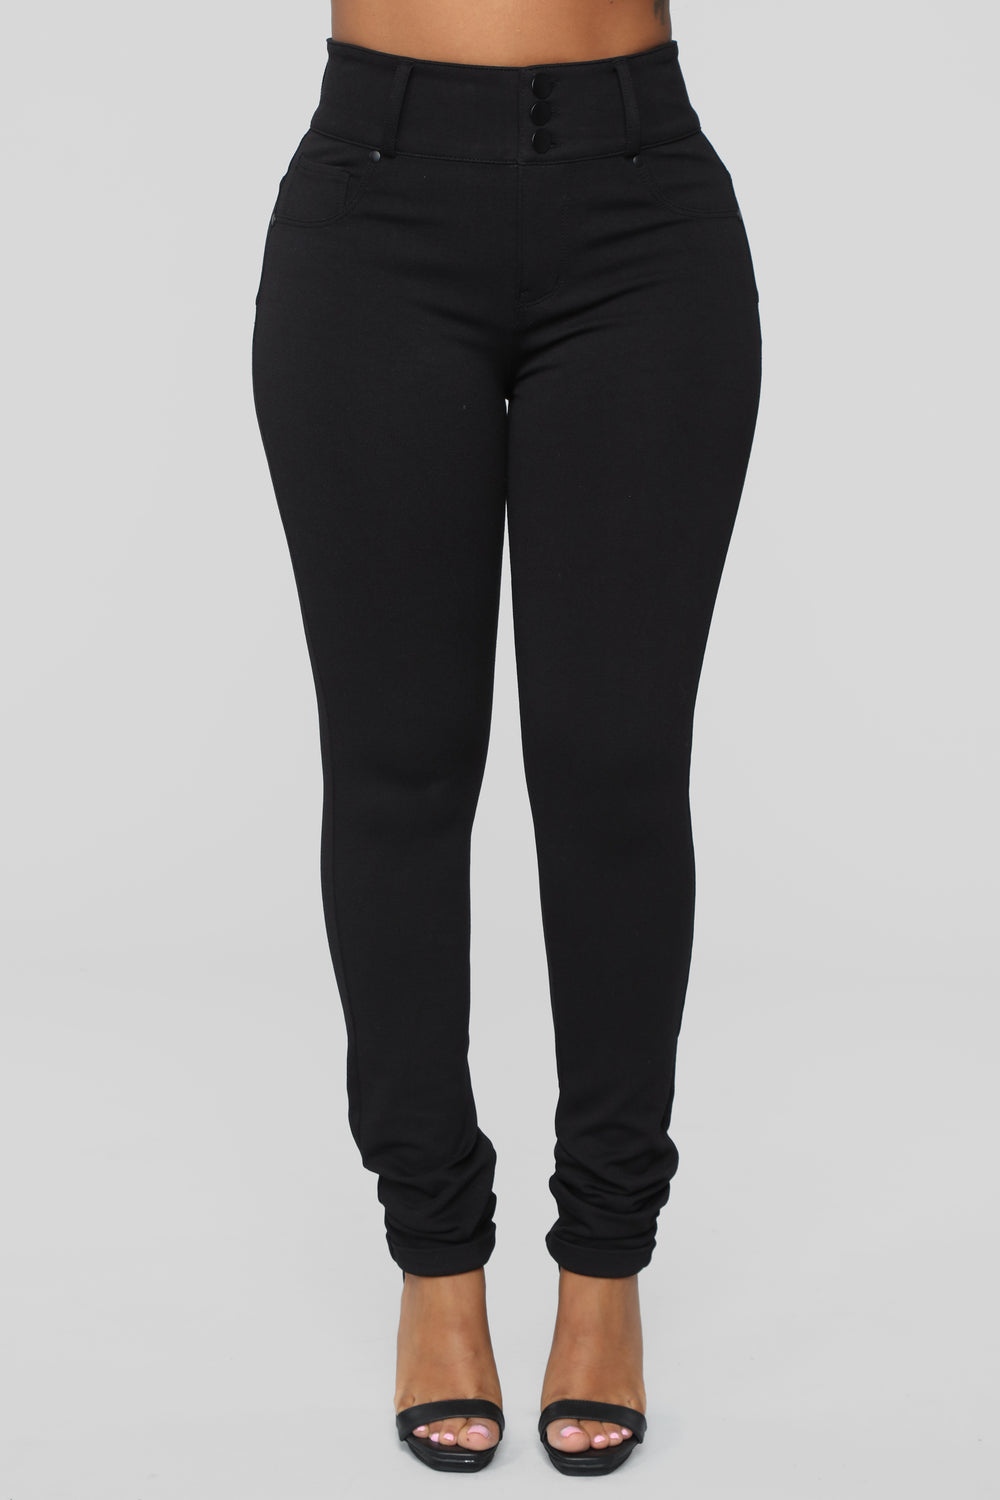 It Is Real Booty Lifting Ponte Pants - Black